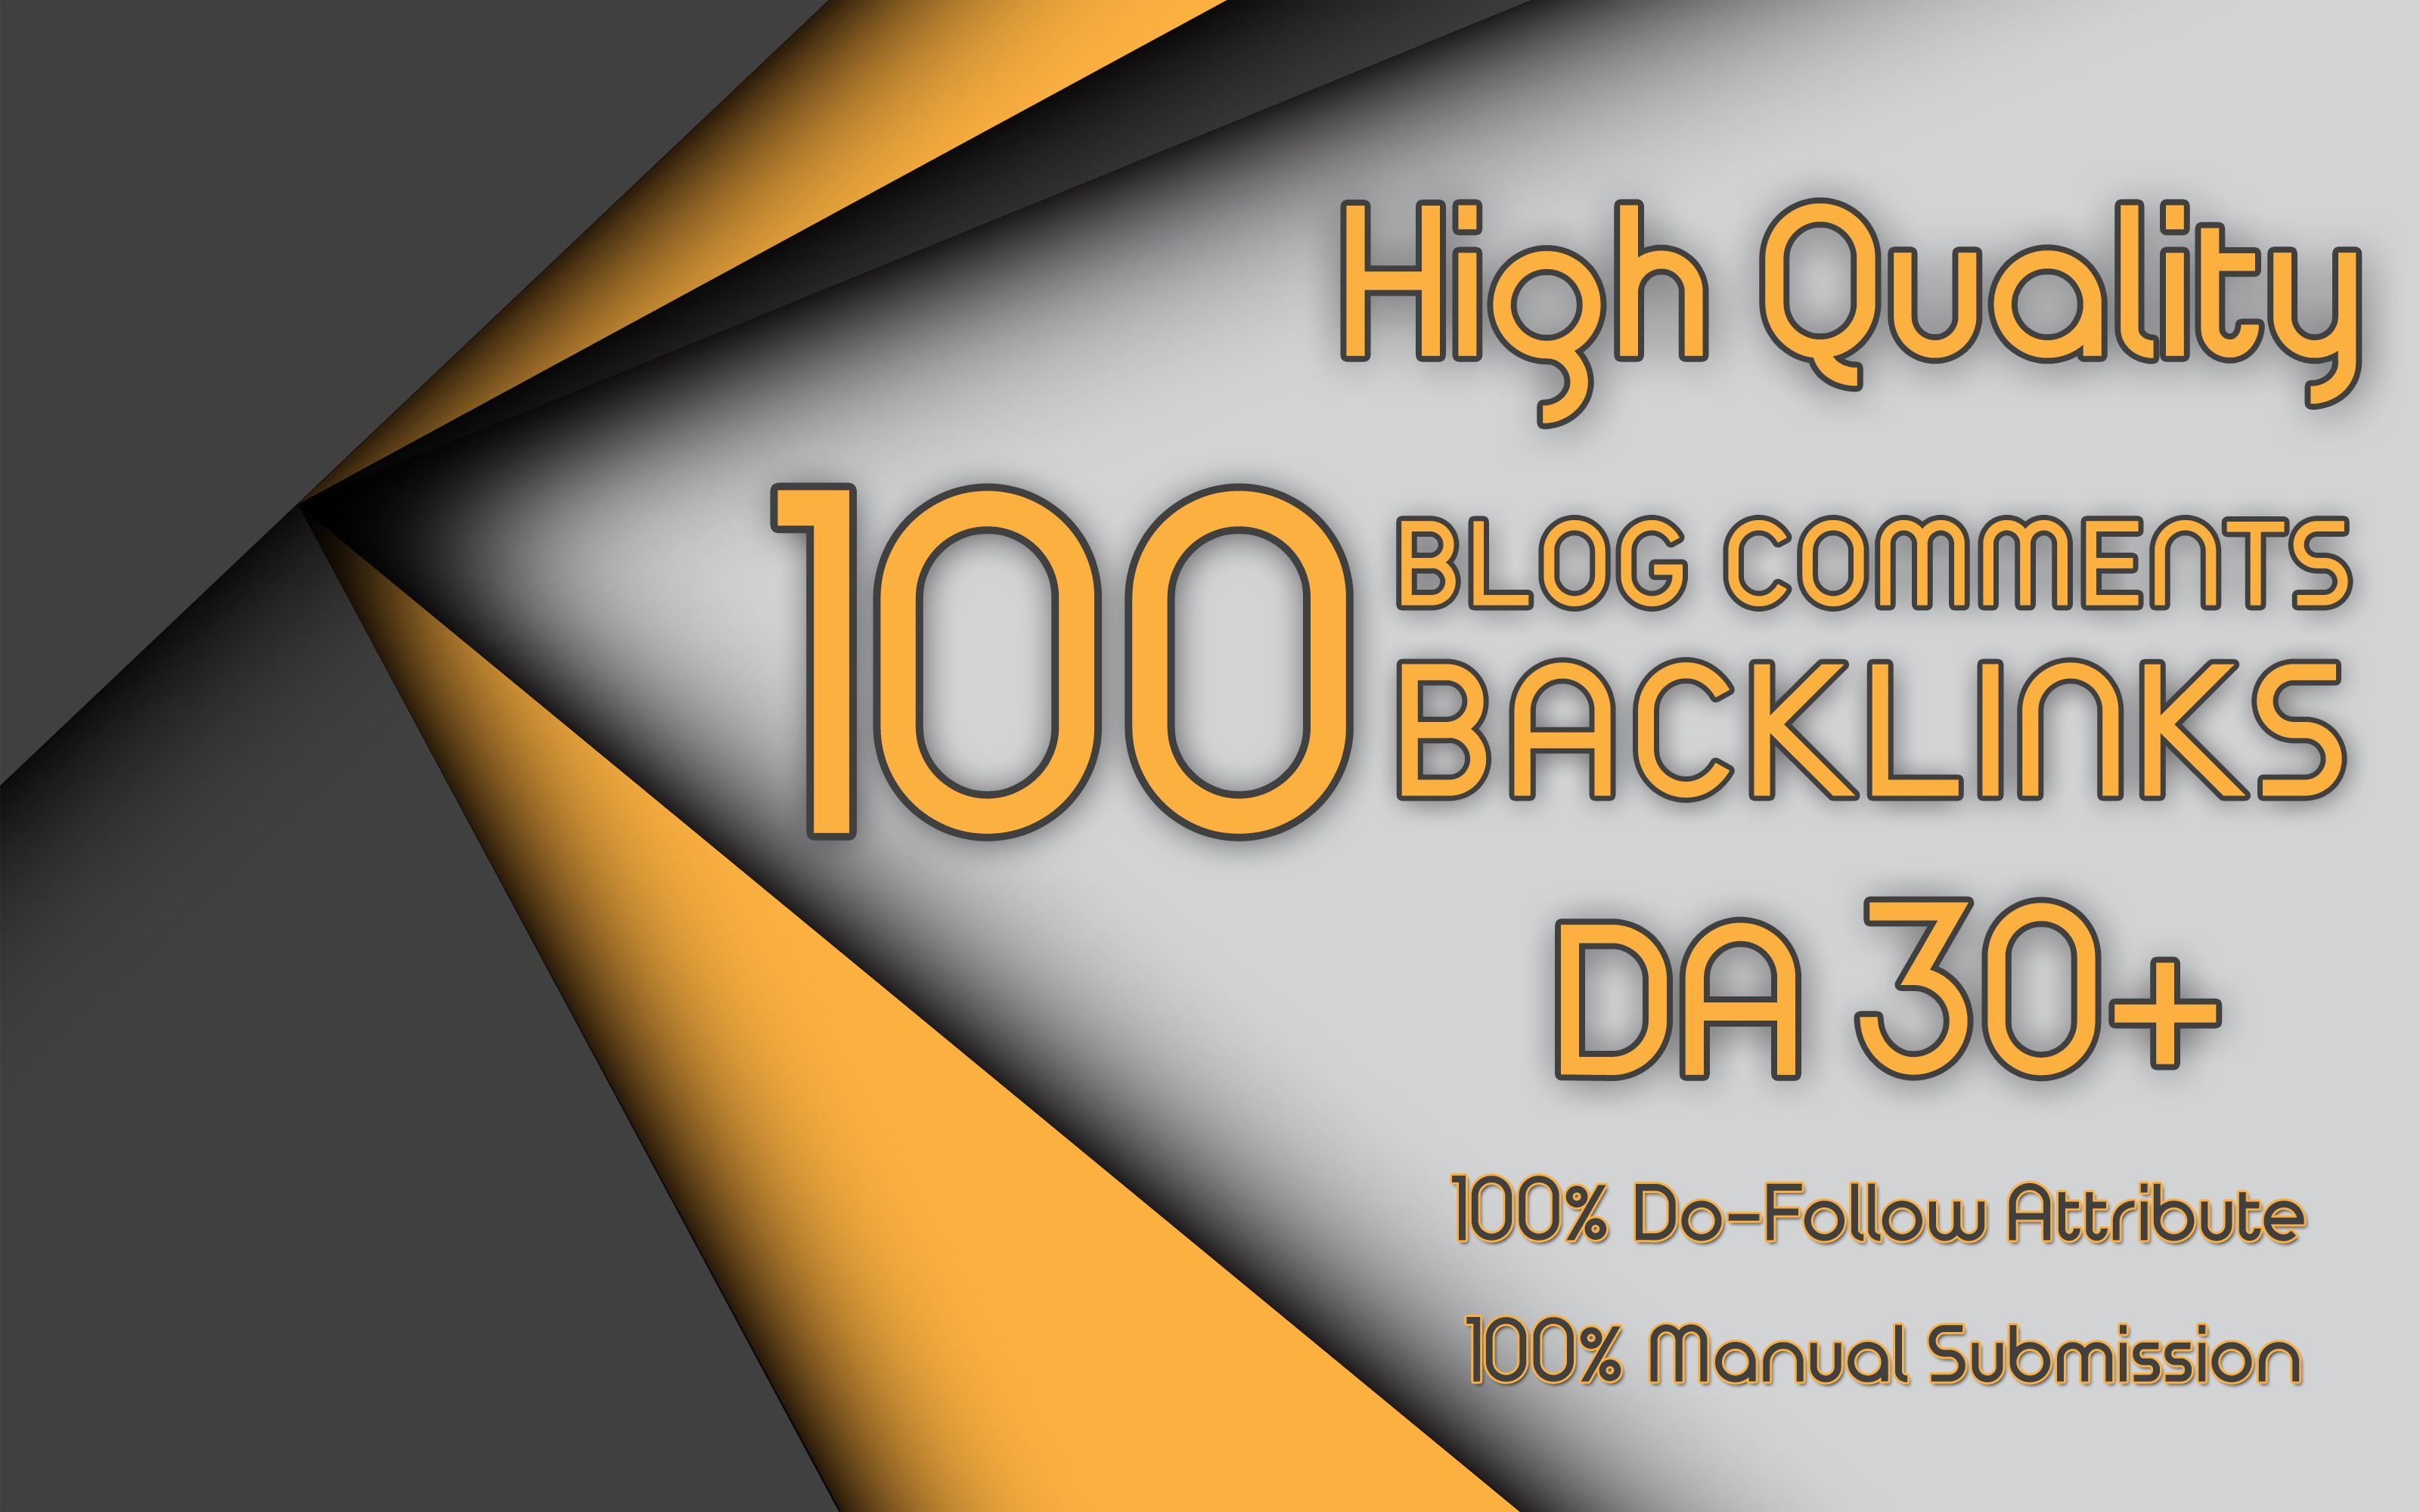 I will do Get 100 High Quality Blog Comments DoFollow Backlinks On DA 30+